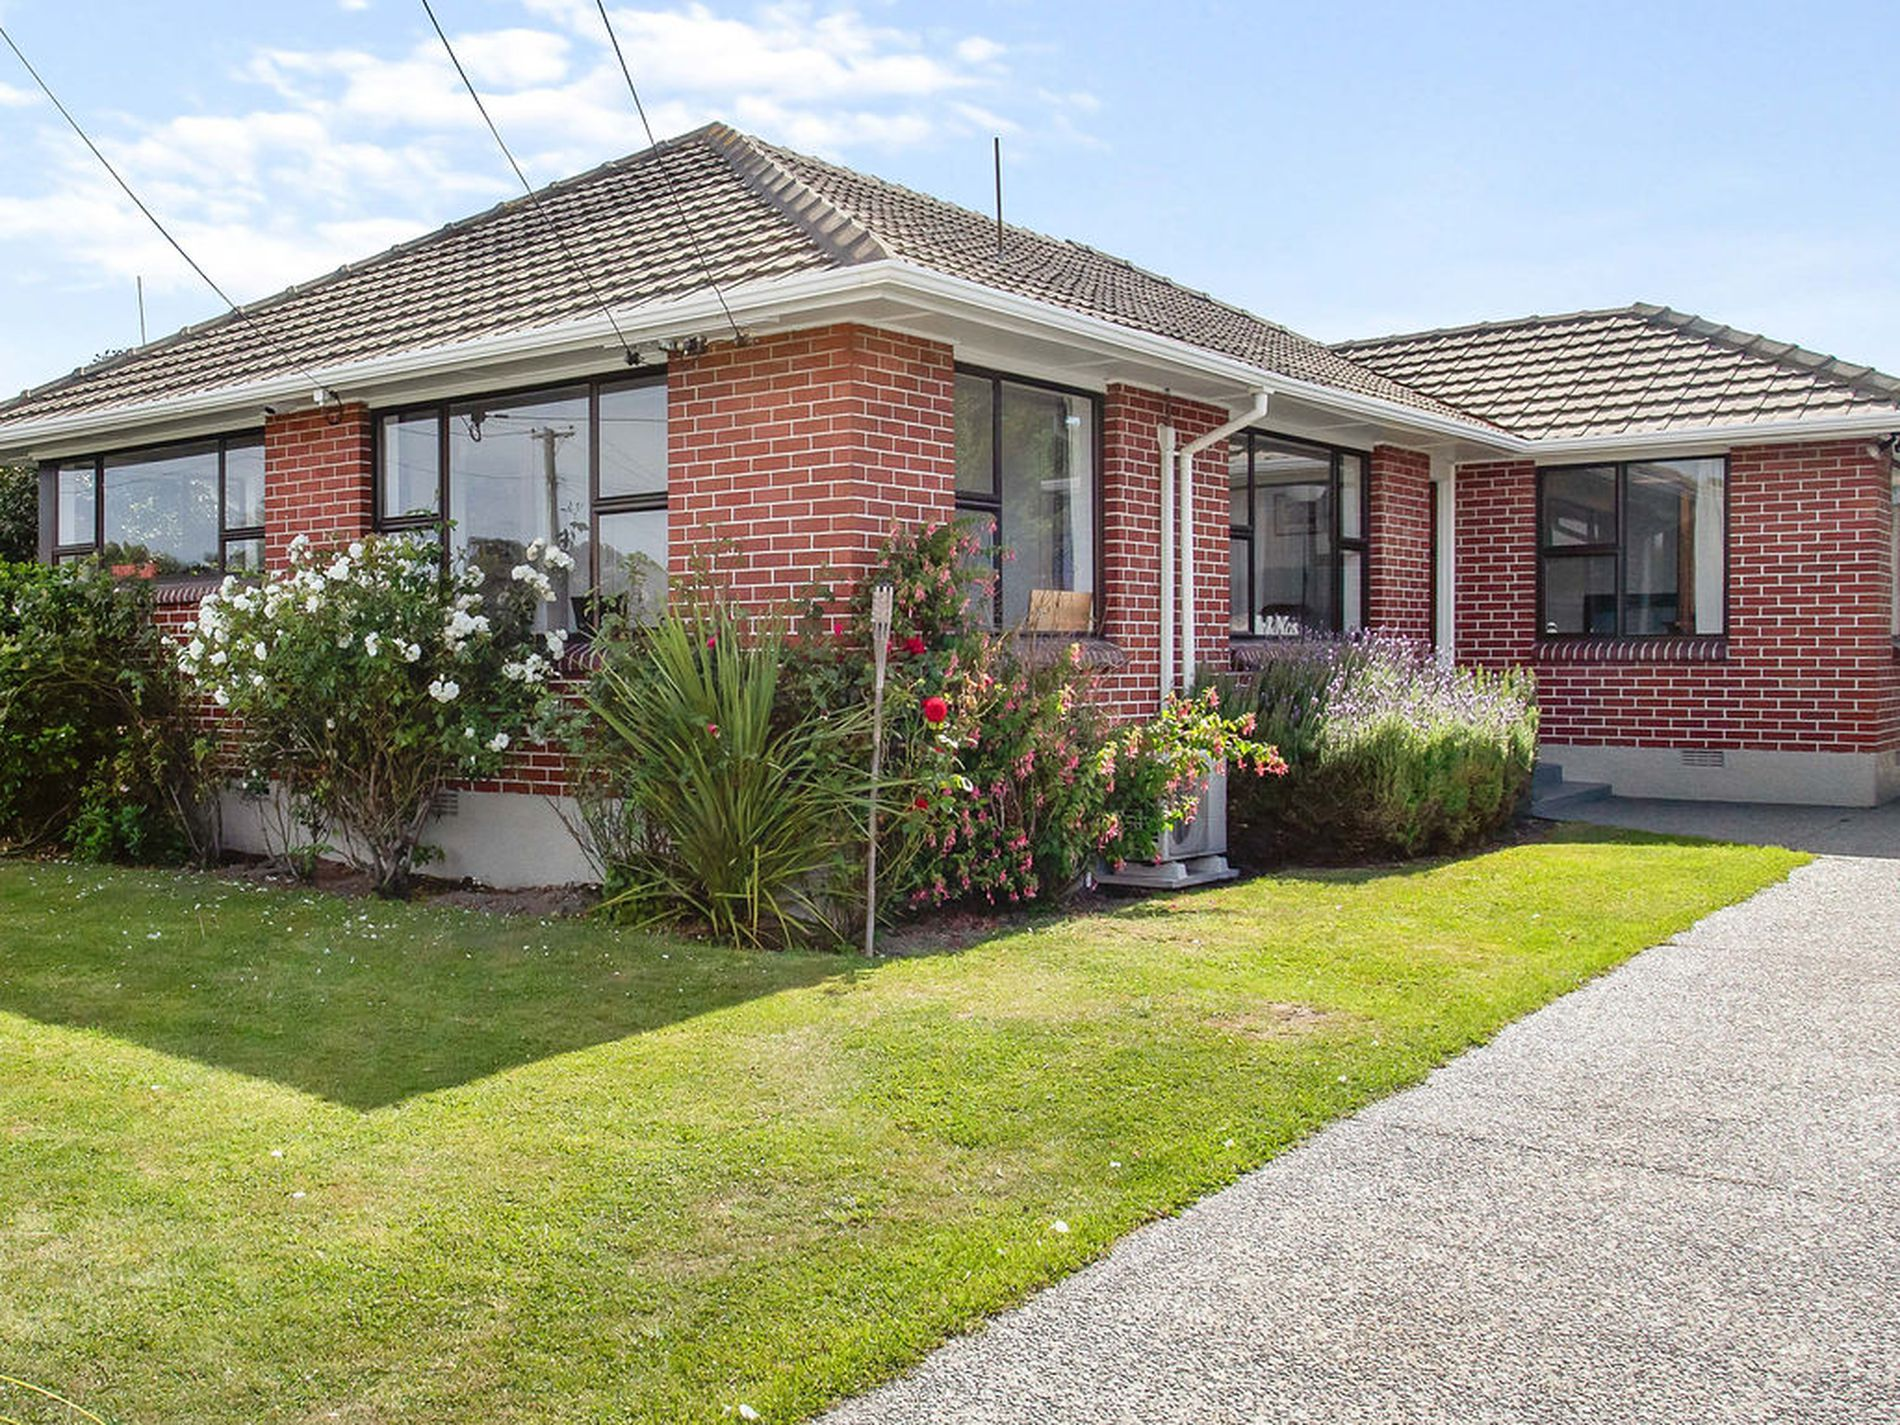 71 Ensign Street, Halswell